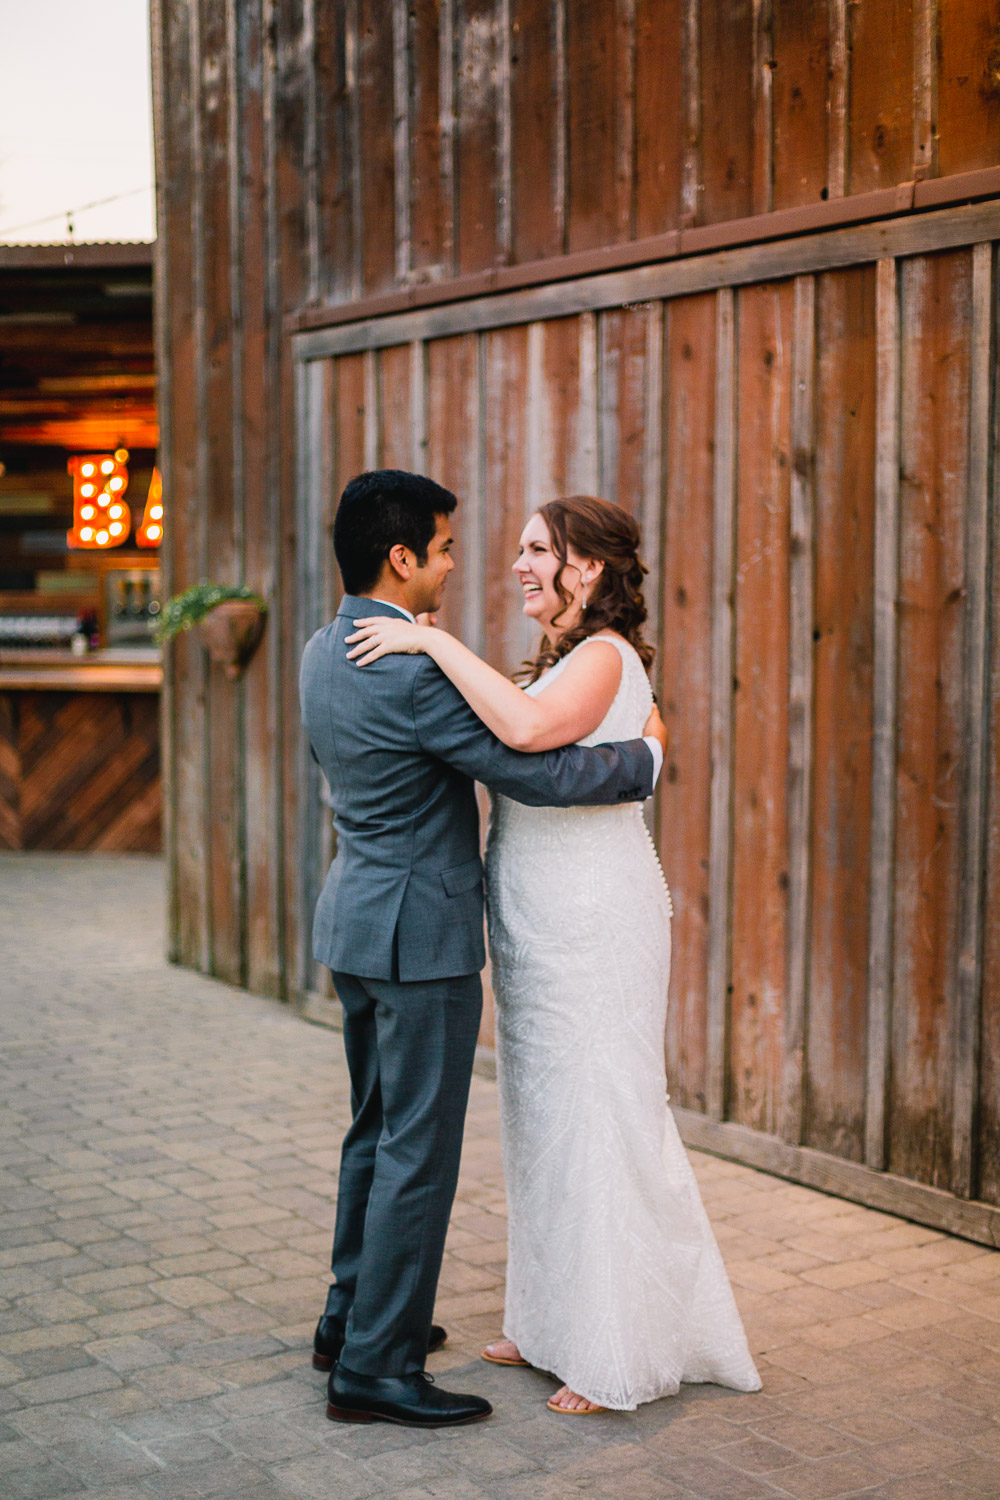 Best-Paso-Robles-California-Wedding-Photographer-359.jpg